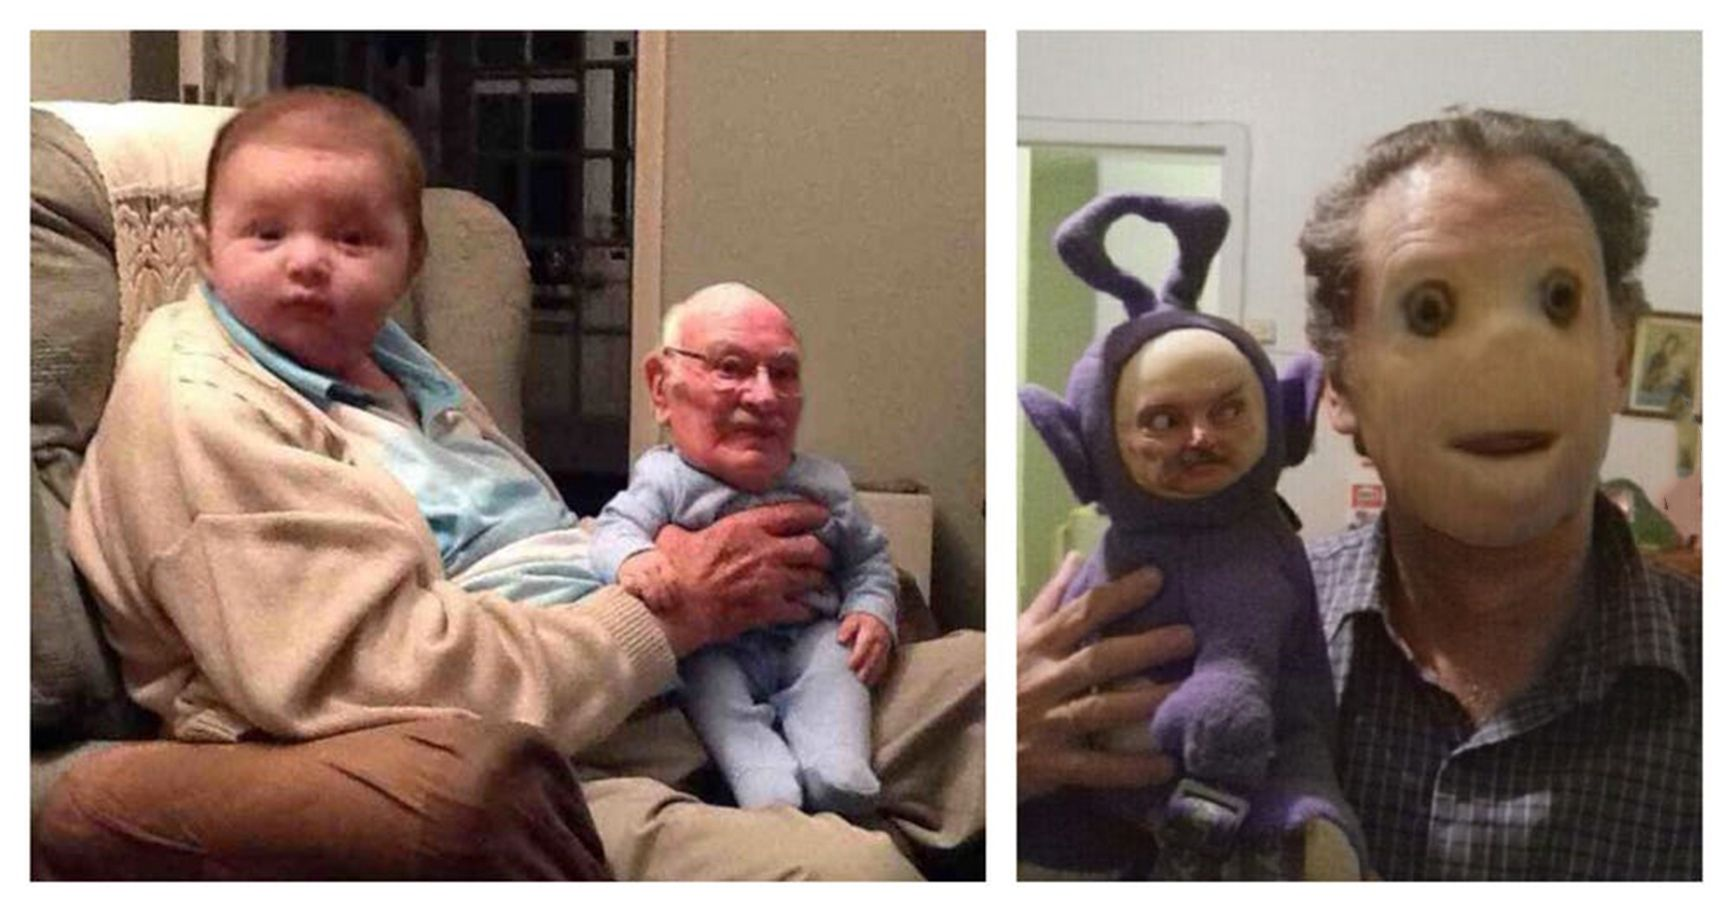 15 Face Swap Fails That Are Equal Parts Hilarious And Horrifying